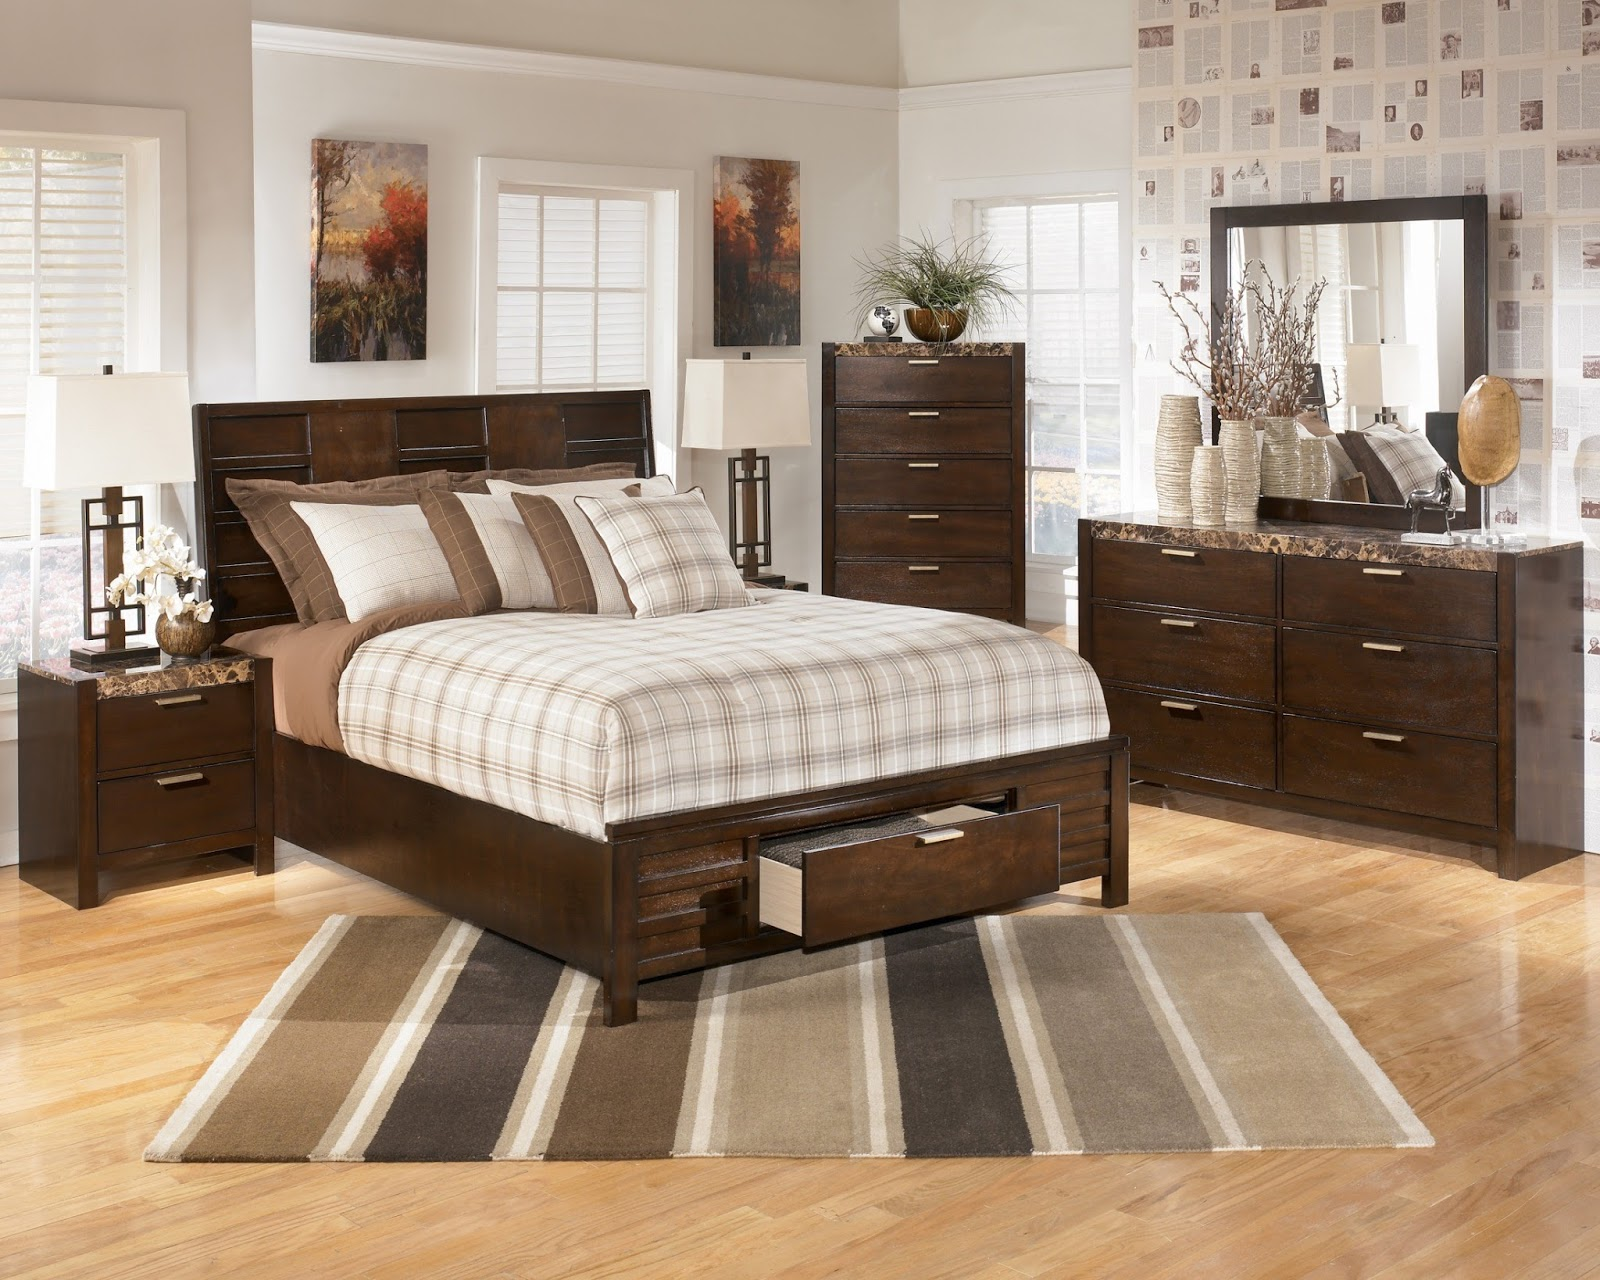 Get rid of that clutter chaviva 39 s for Furniture arrangement for small bedroom